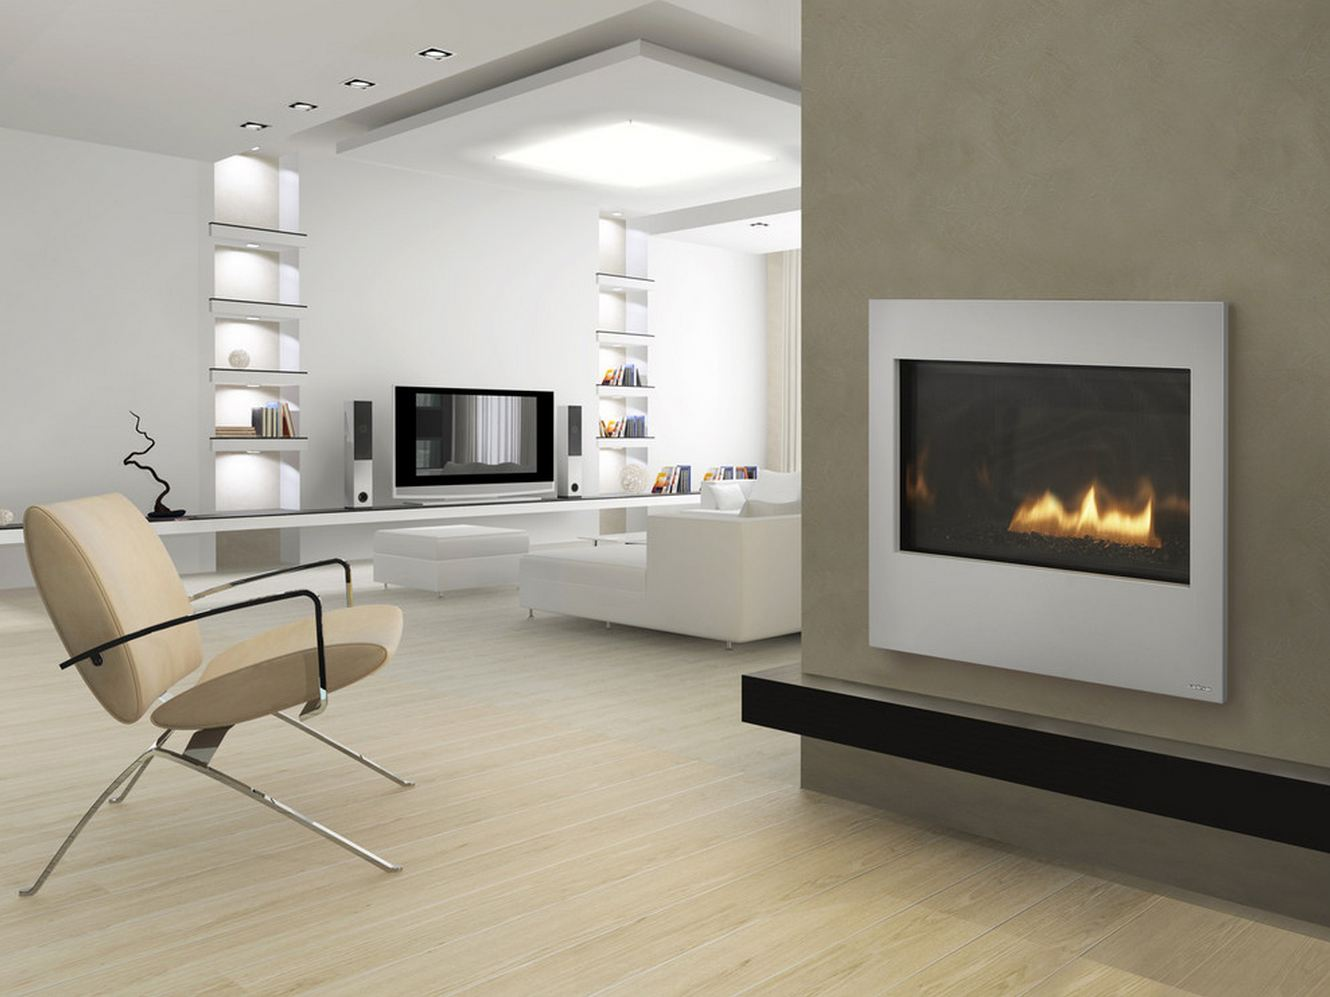 Fireplace Design Idea Unique Fireplace Idea Gallery Heat Glo